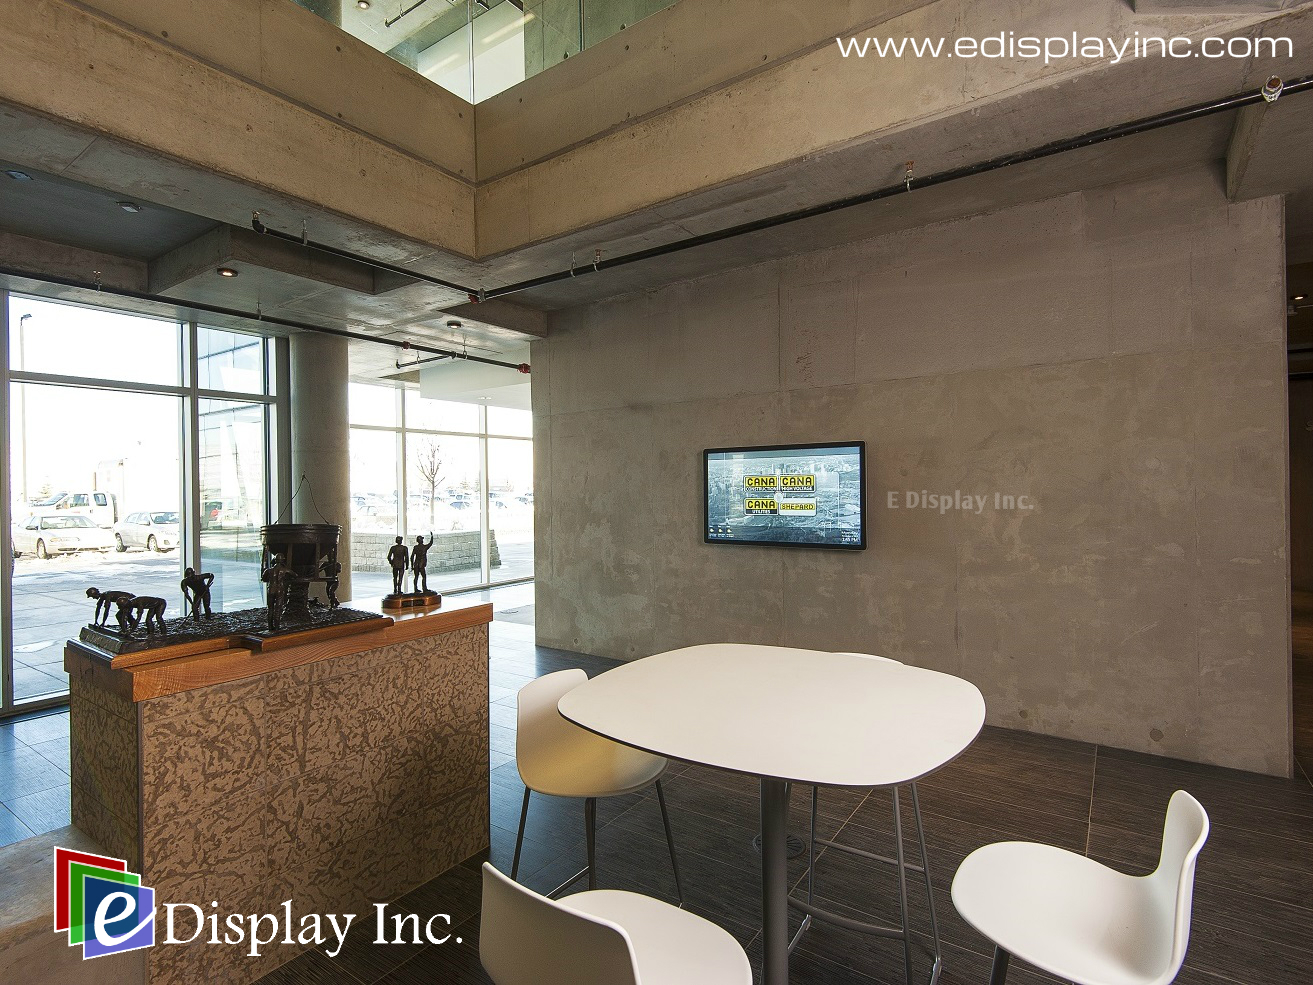 Interactive Touch Screen Solution for CANA by E Display 2